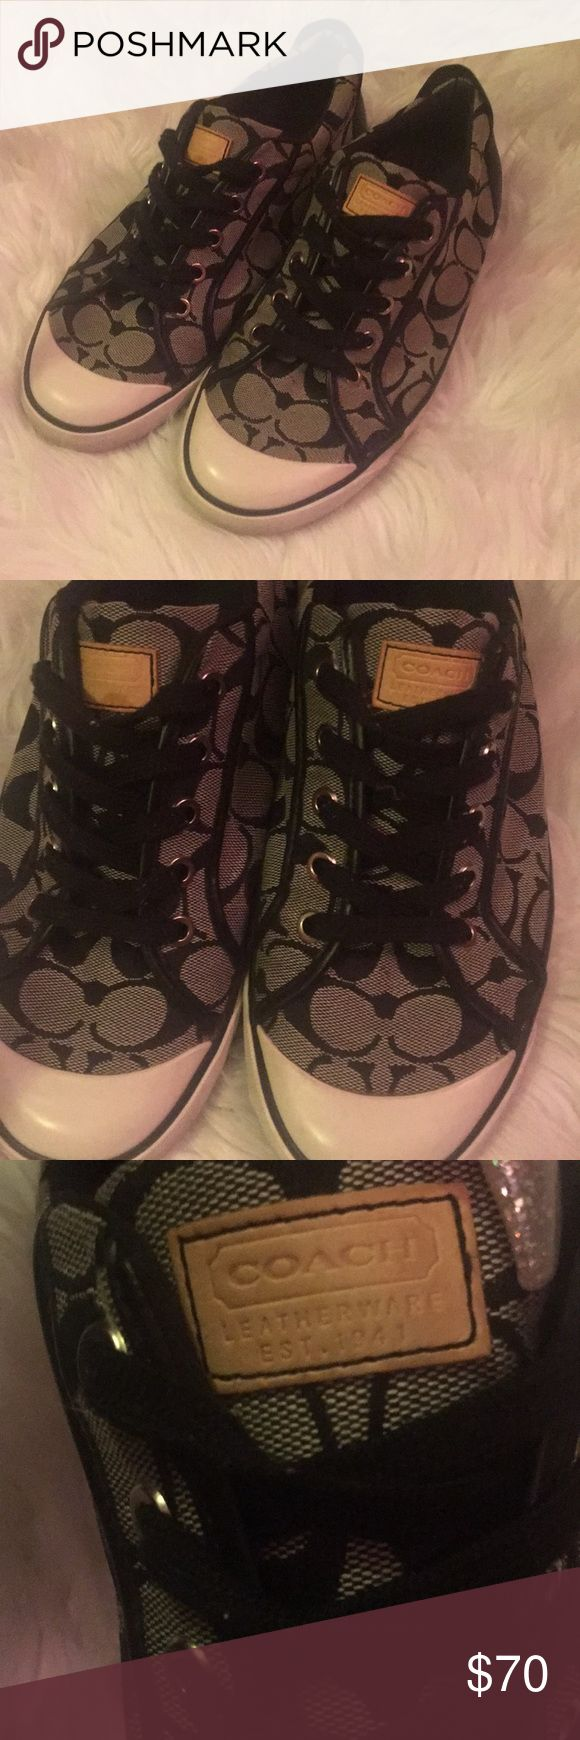 Coach tennis shoes Black Coach Shoes. slightly worn, but not damaged at all, still in good condition, like new, soles of shoes are clean. Shoe material is completely. Clean. Coach Shoes